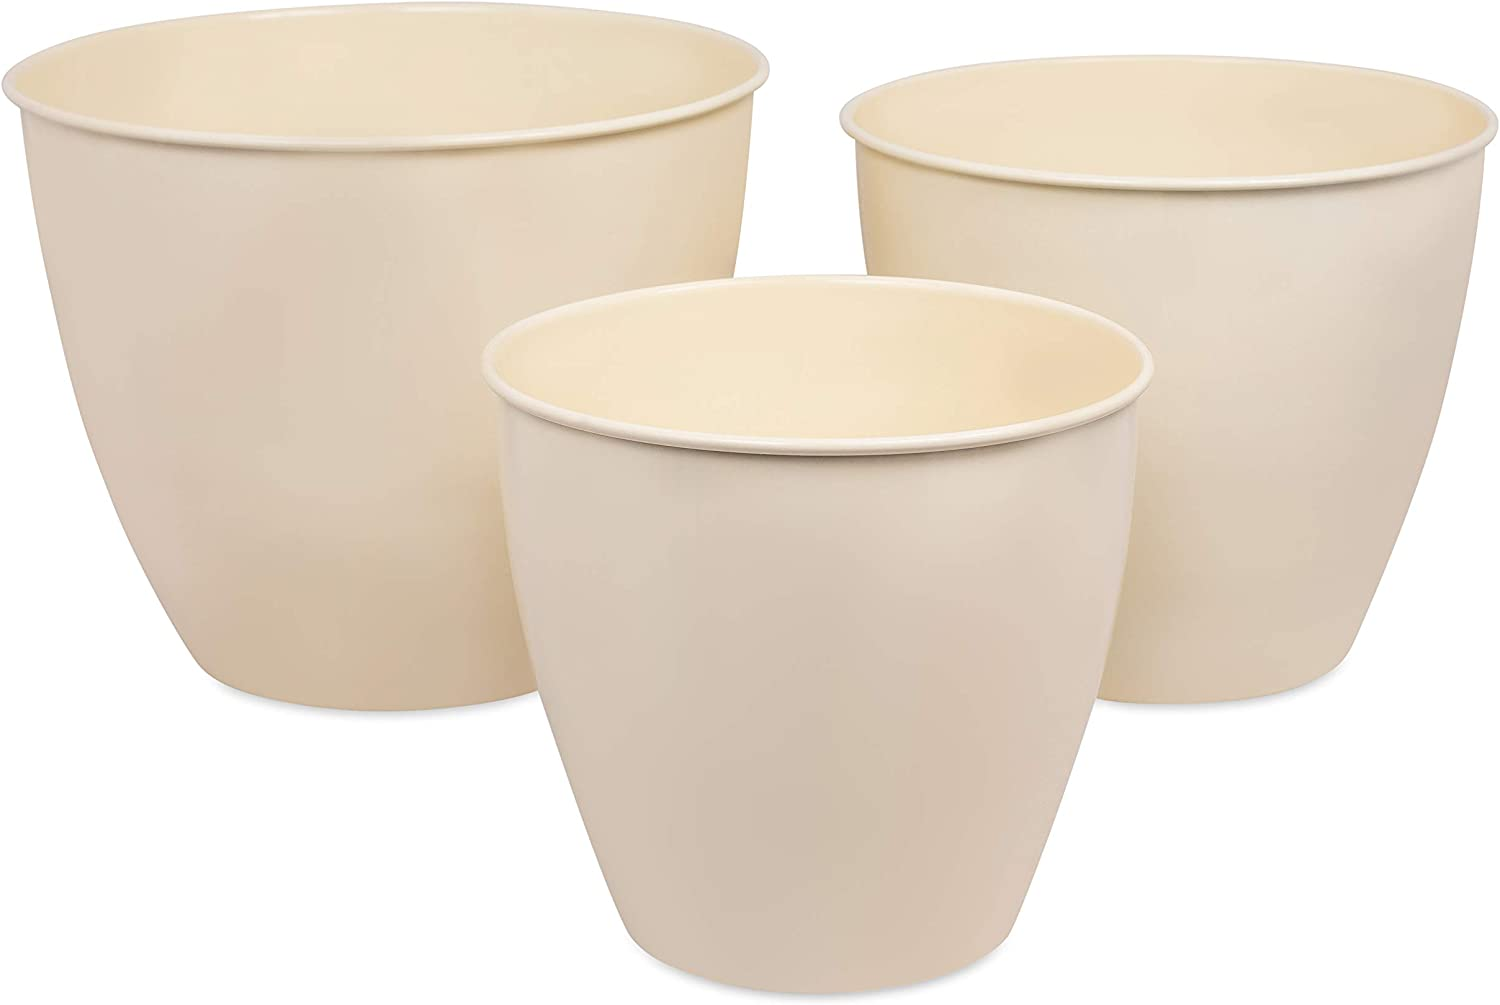 BirdRock Home Modern Planter Pot for Indoor or Outdoor Plant Flower - Flowers Plants Trees Porch Garden Pots - Rust and Weather Resistant (Set of 3 - Small, Medium, Large, Champagne)